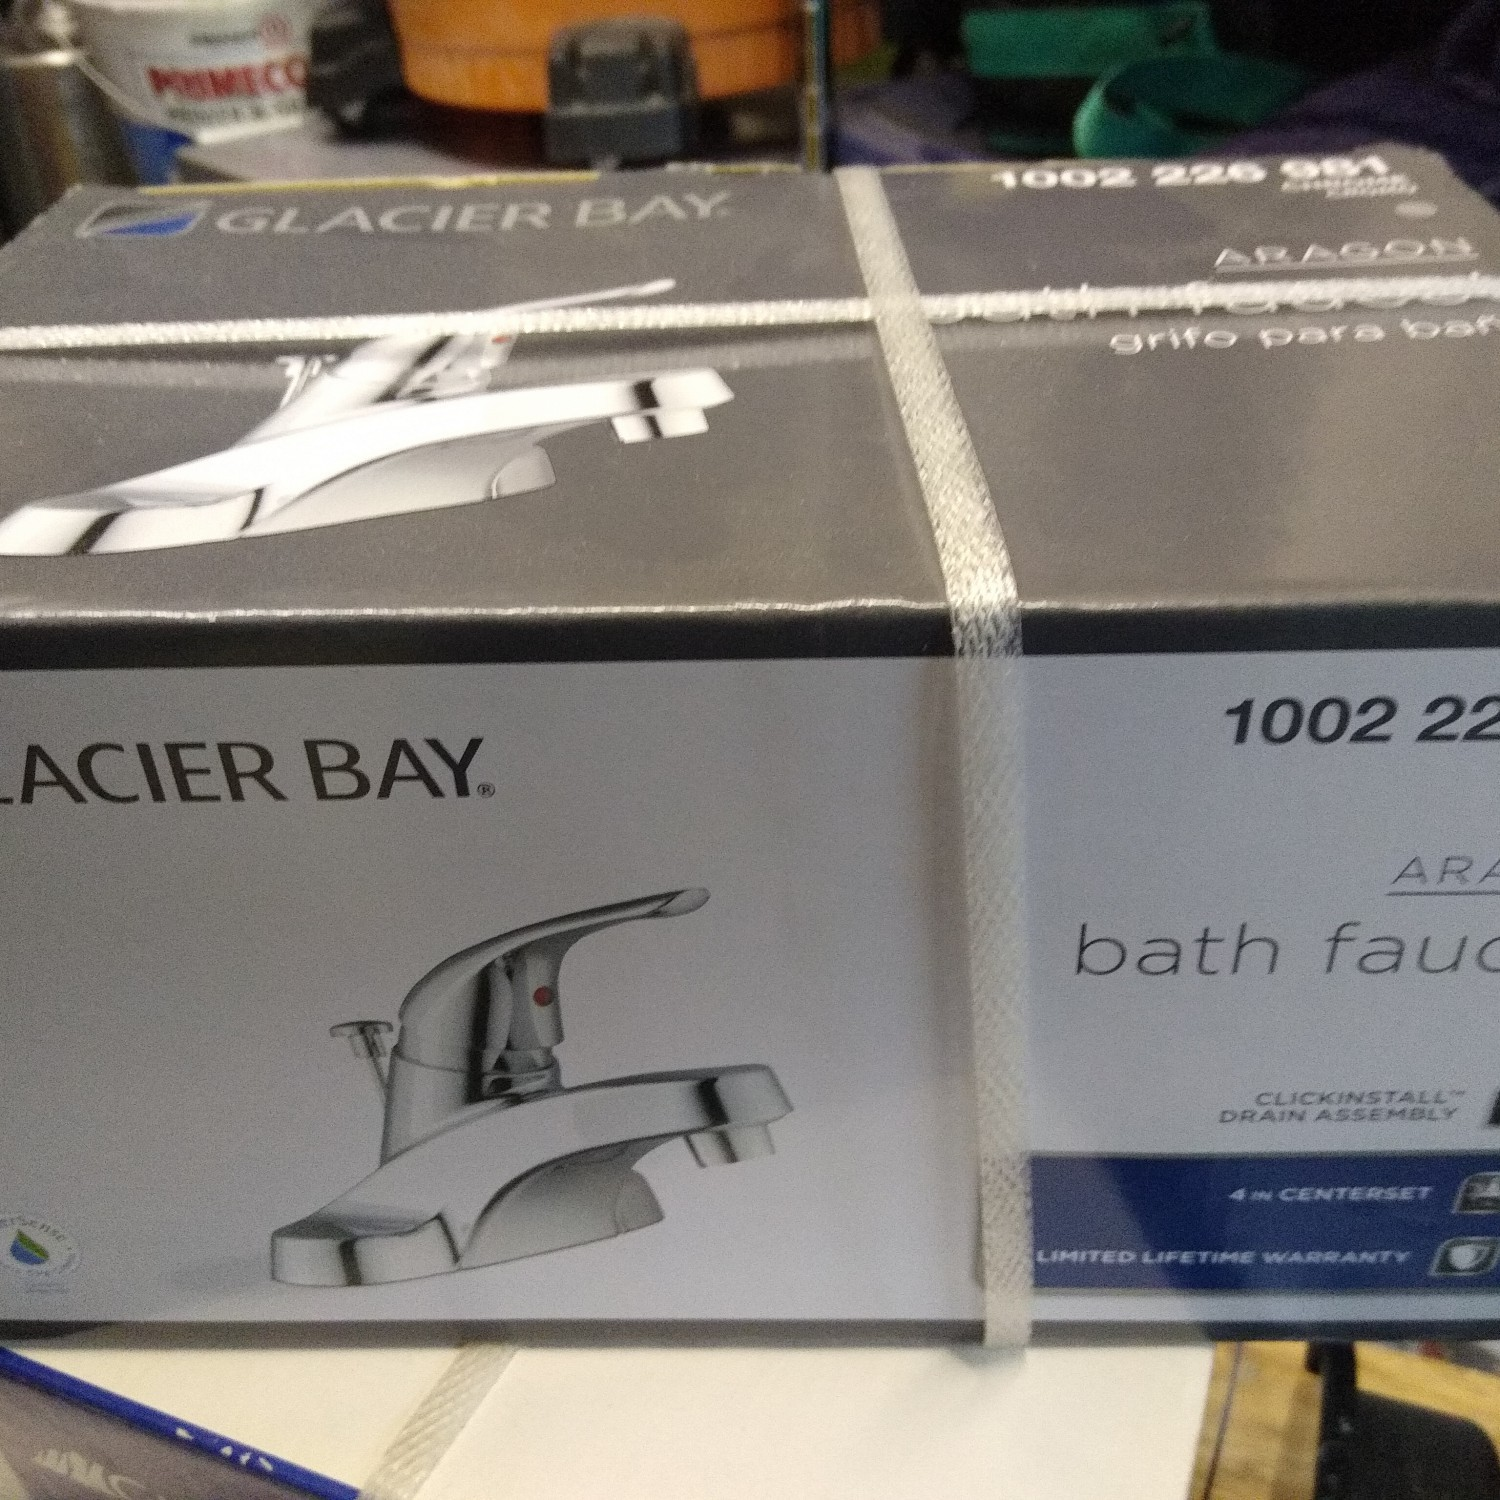 2 Bathroom faucets. Brand new in box.